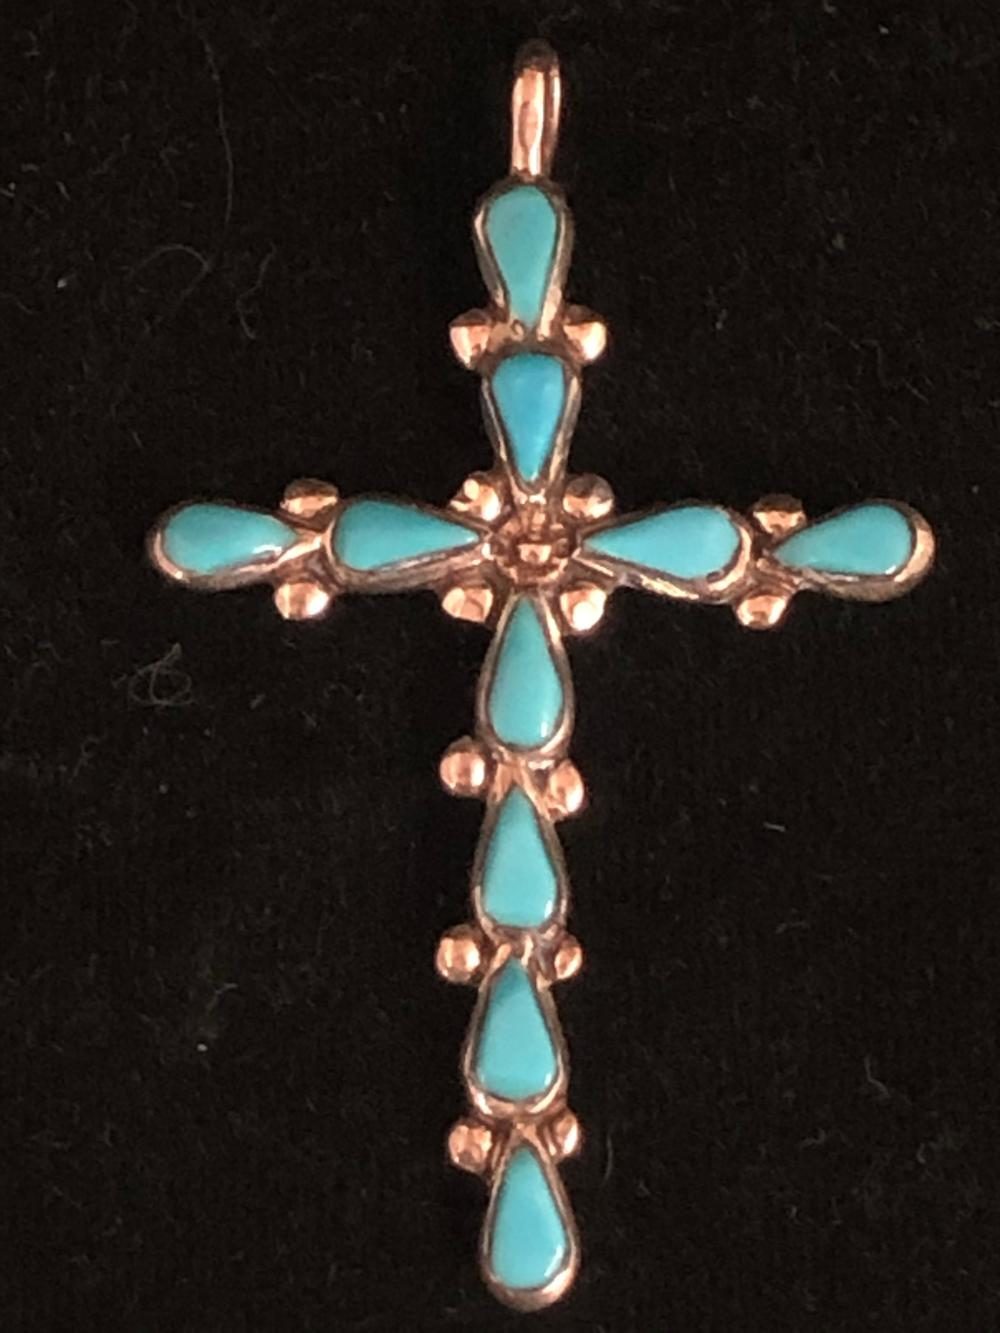 Cross sterling silver pendant with turquoise stones